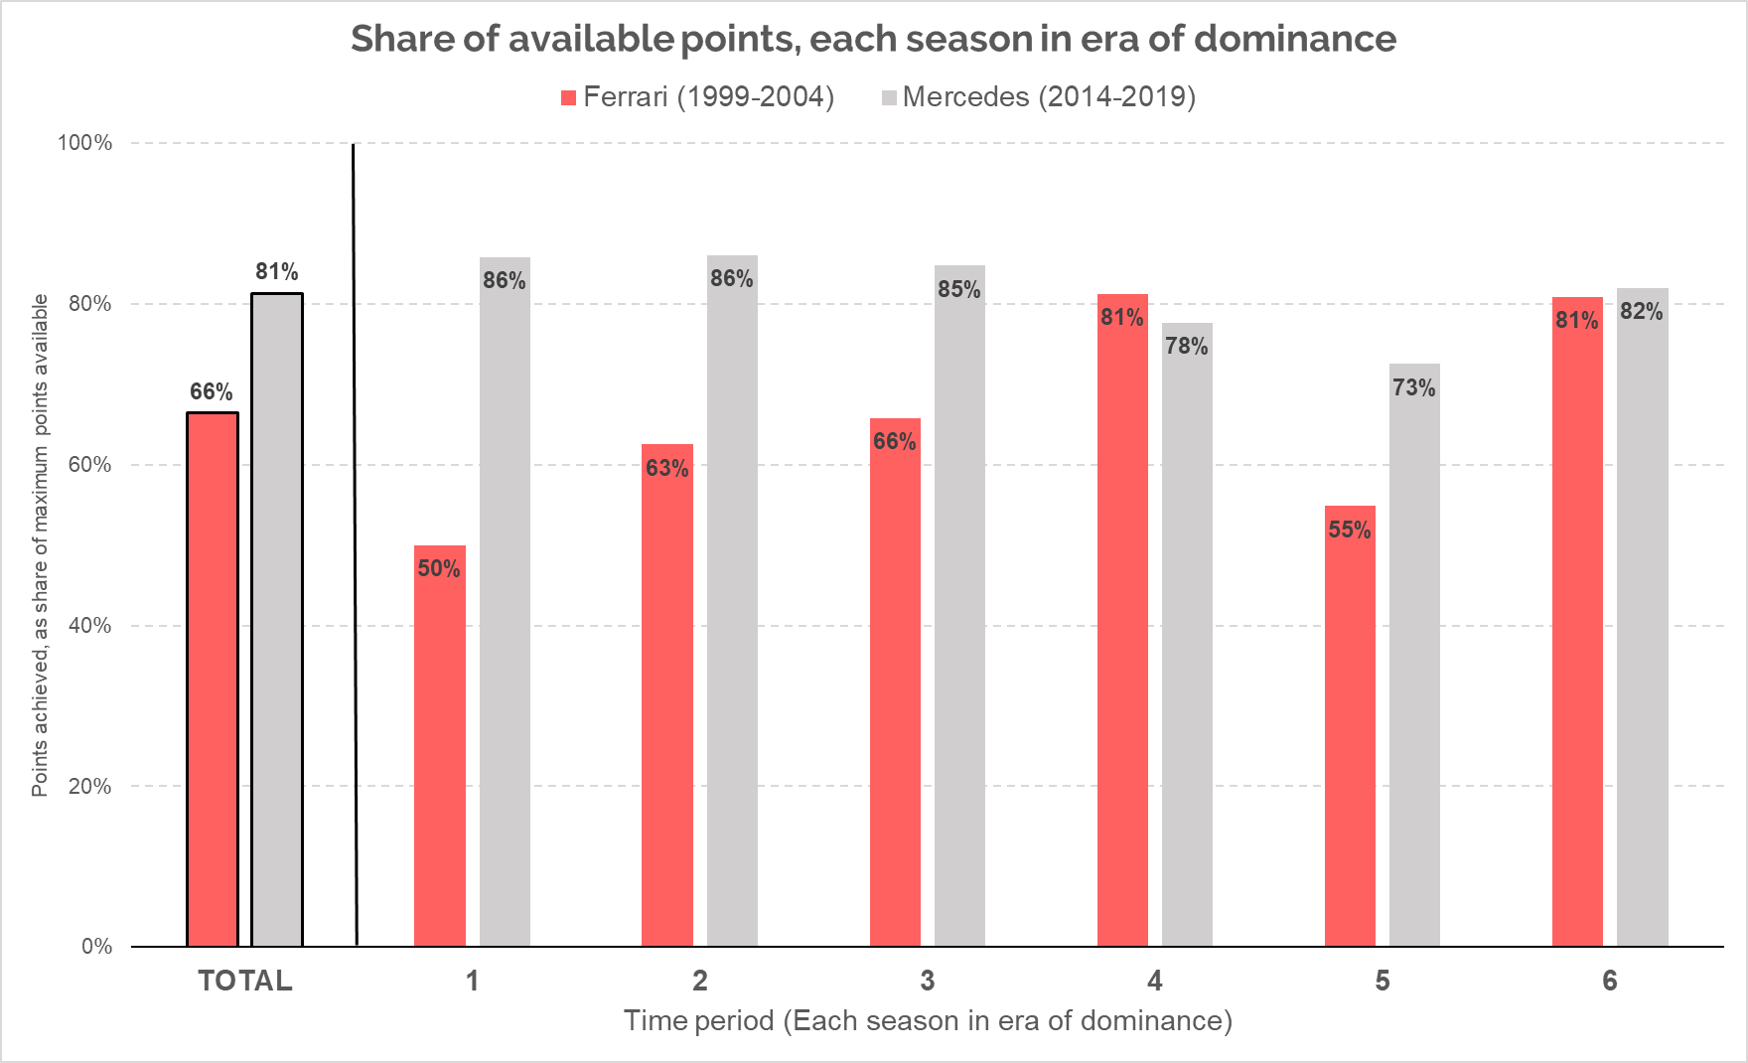 Graph showing the share of available points taken by Ferrari and Mercedes in each team's resepctive years of dominance of F1